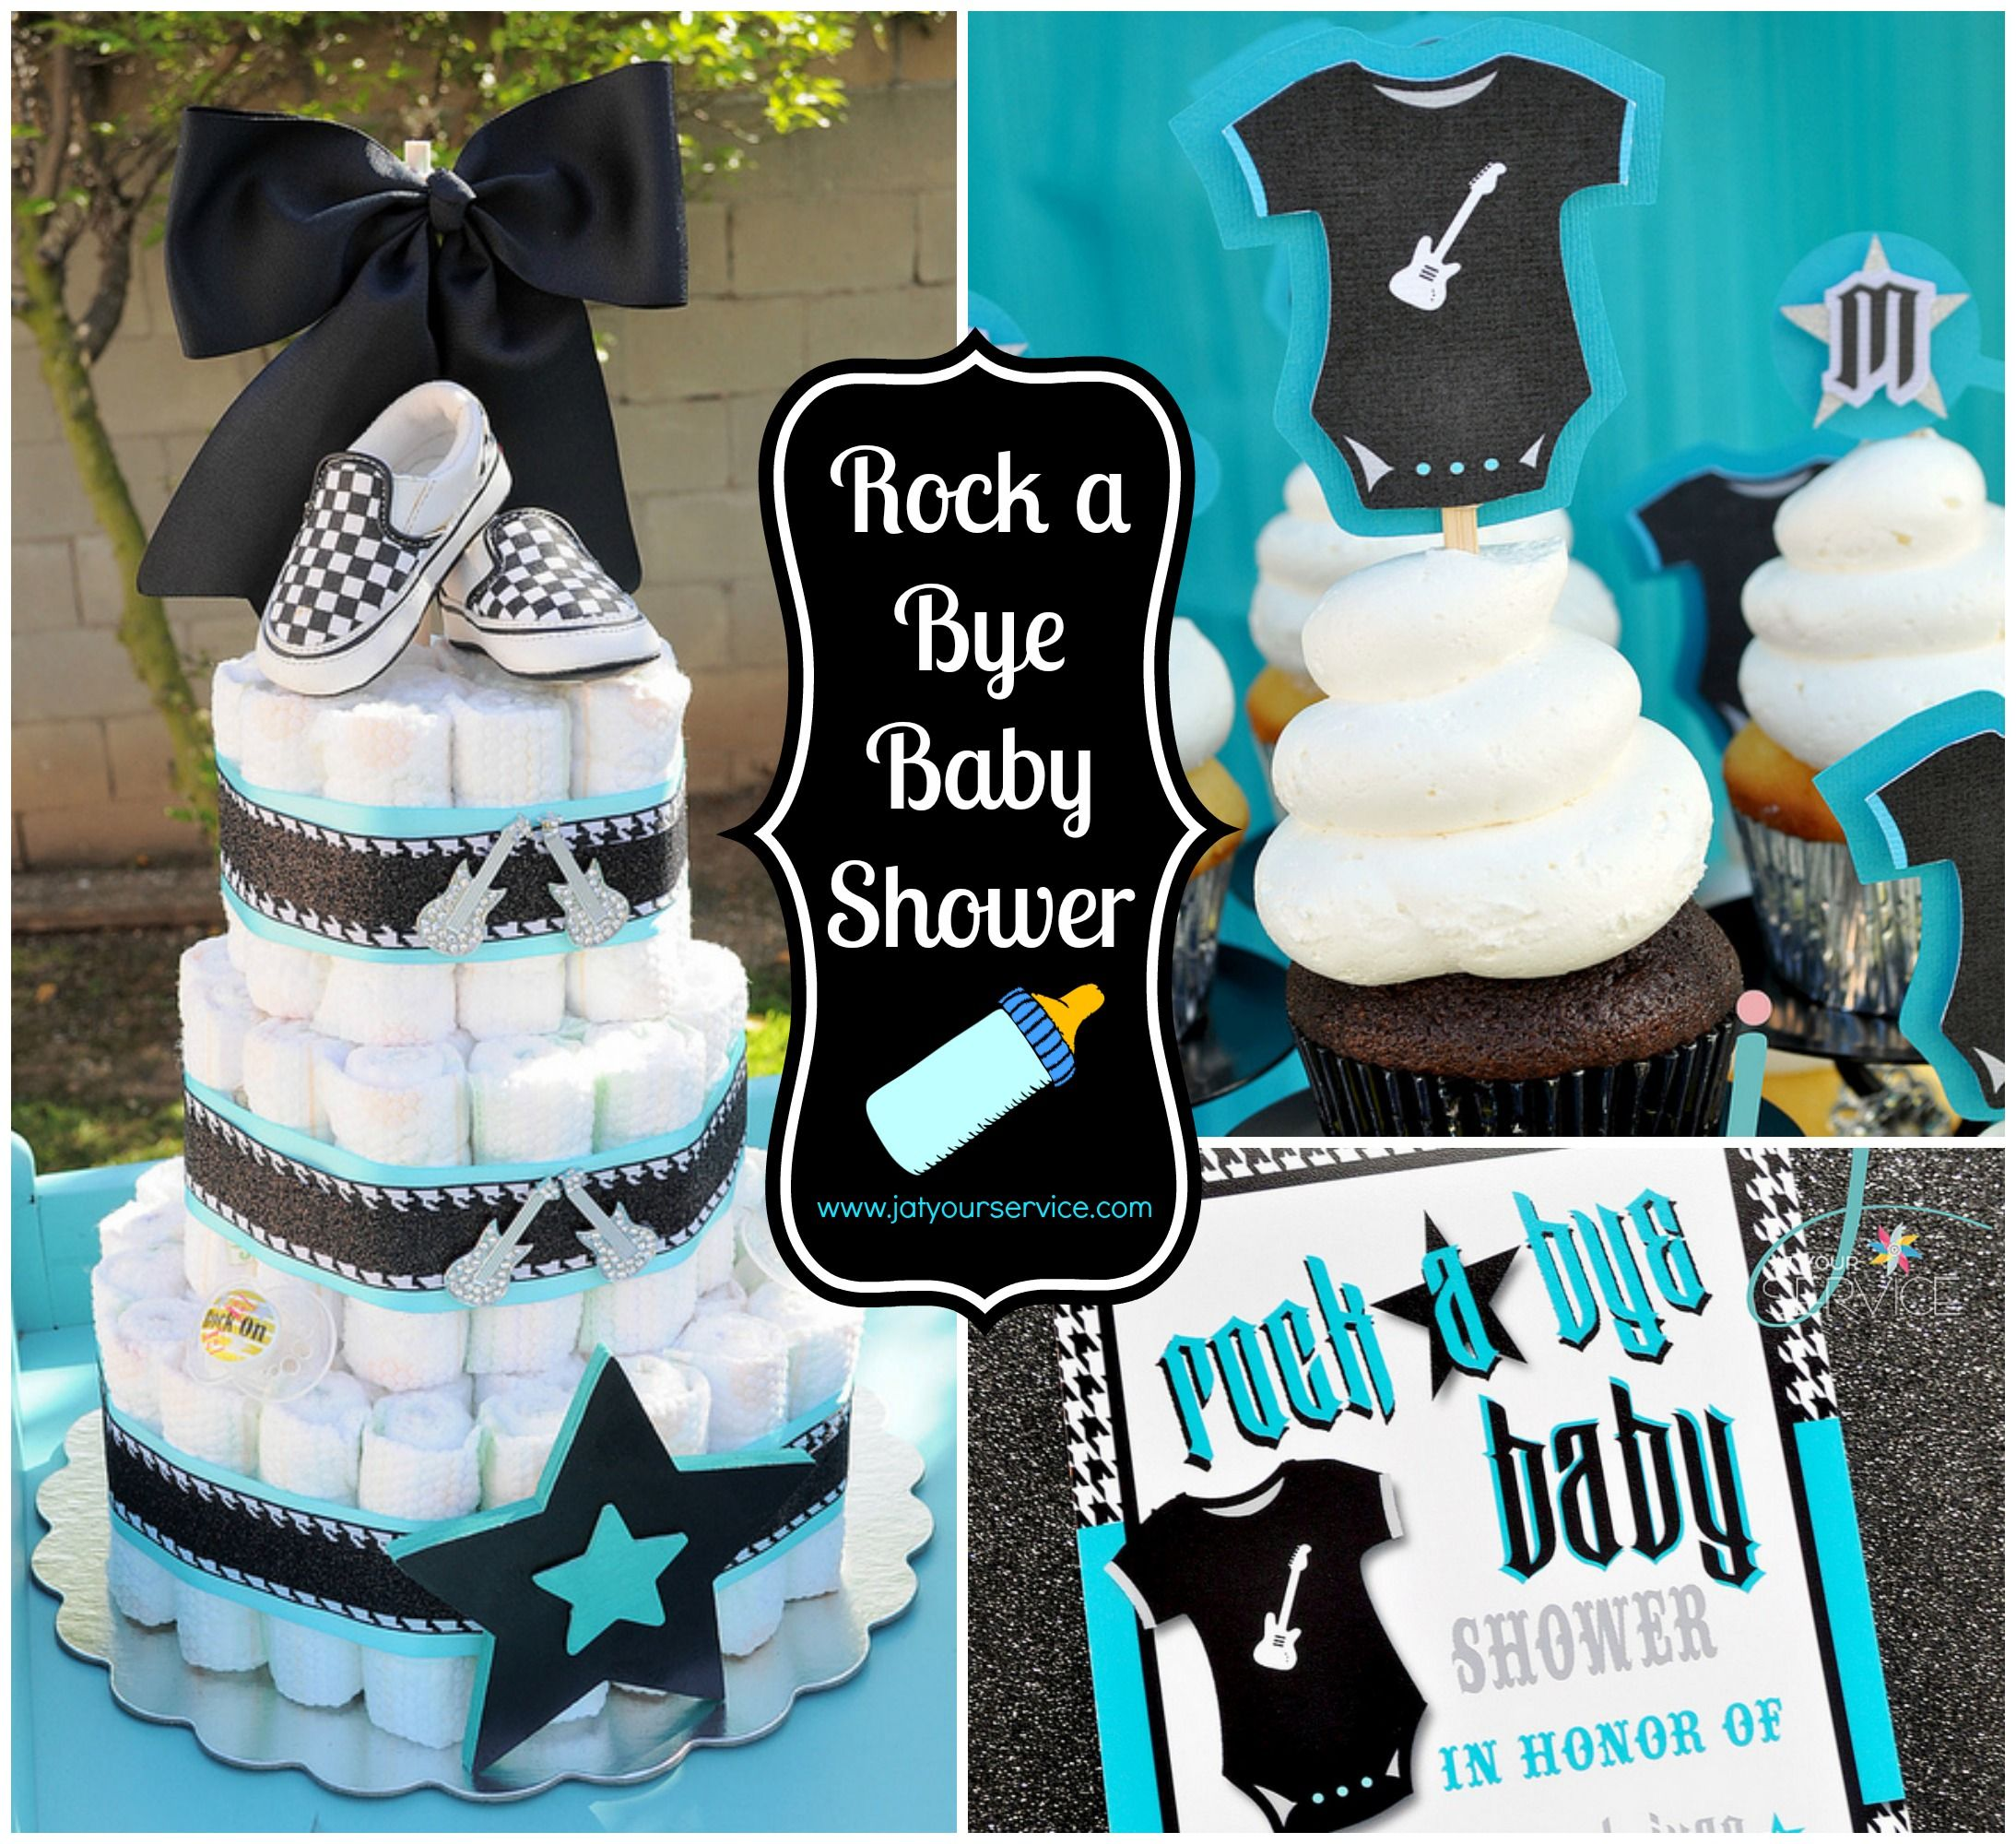 Rock a Bye Baby Shower #itsaboy | Baby Showers in 2019 | Music baby